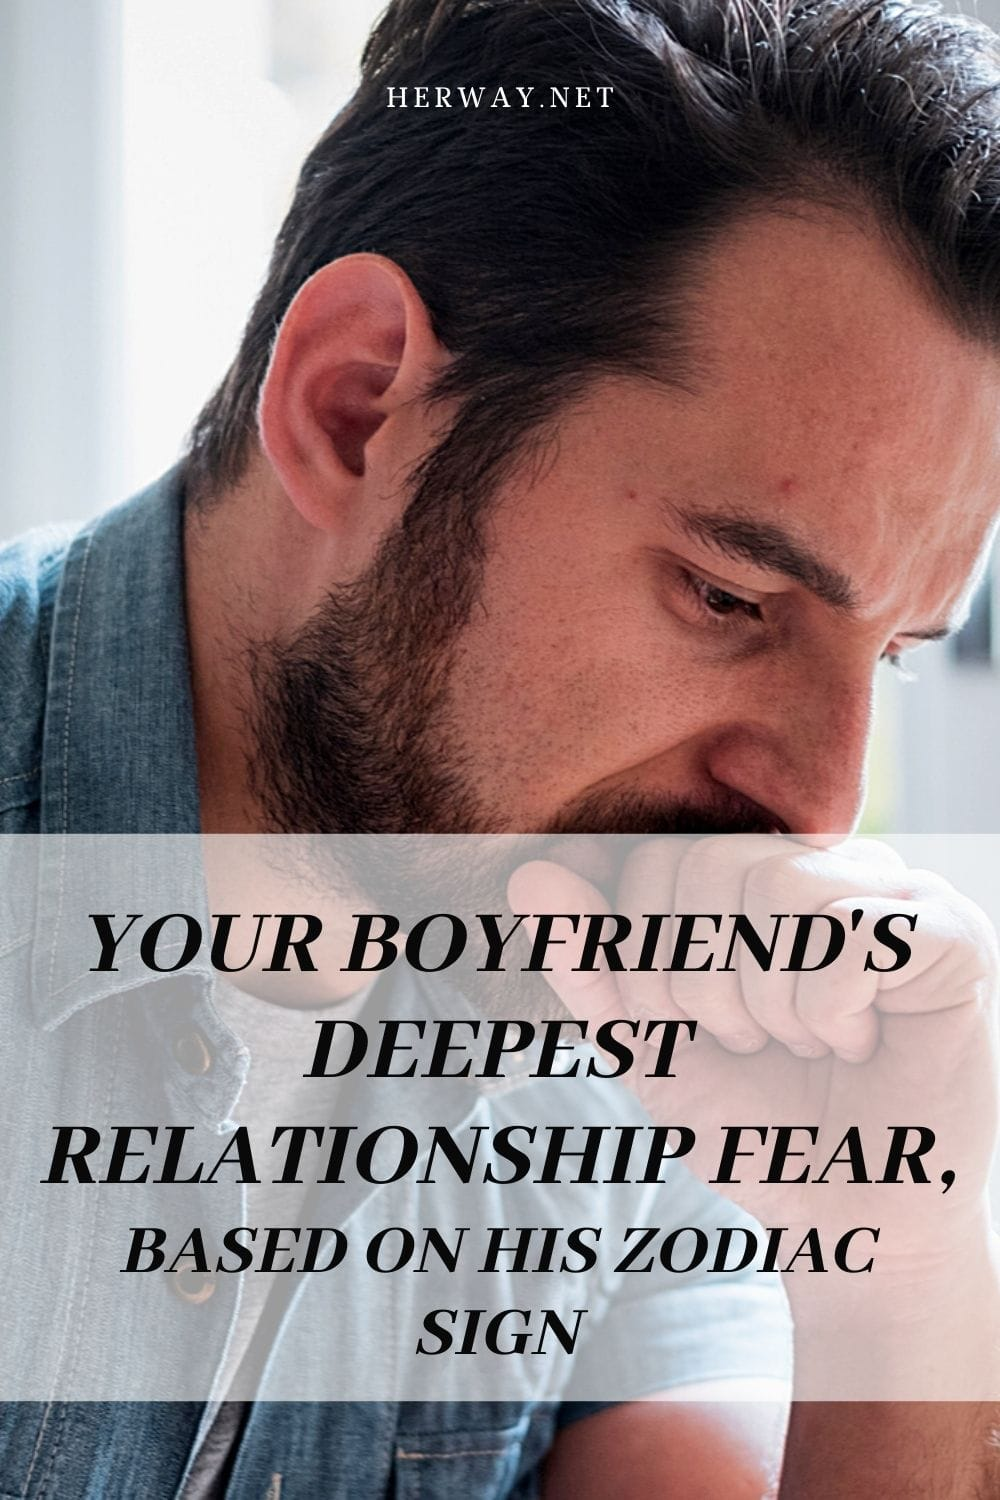 Your Boyfriend's Deepest Relationship Fear, Based On His Zodiac Sign